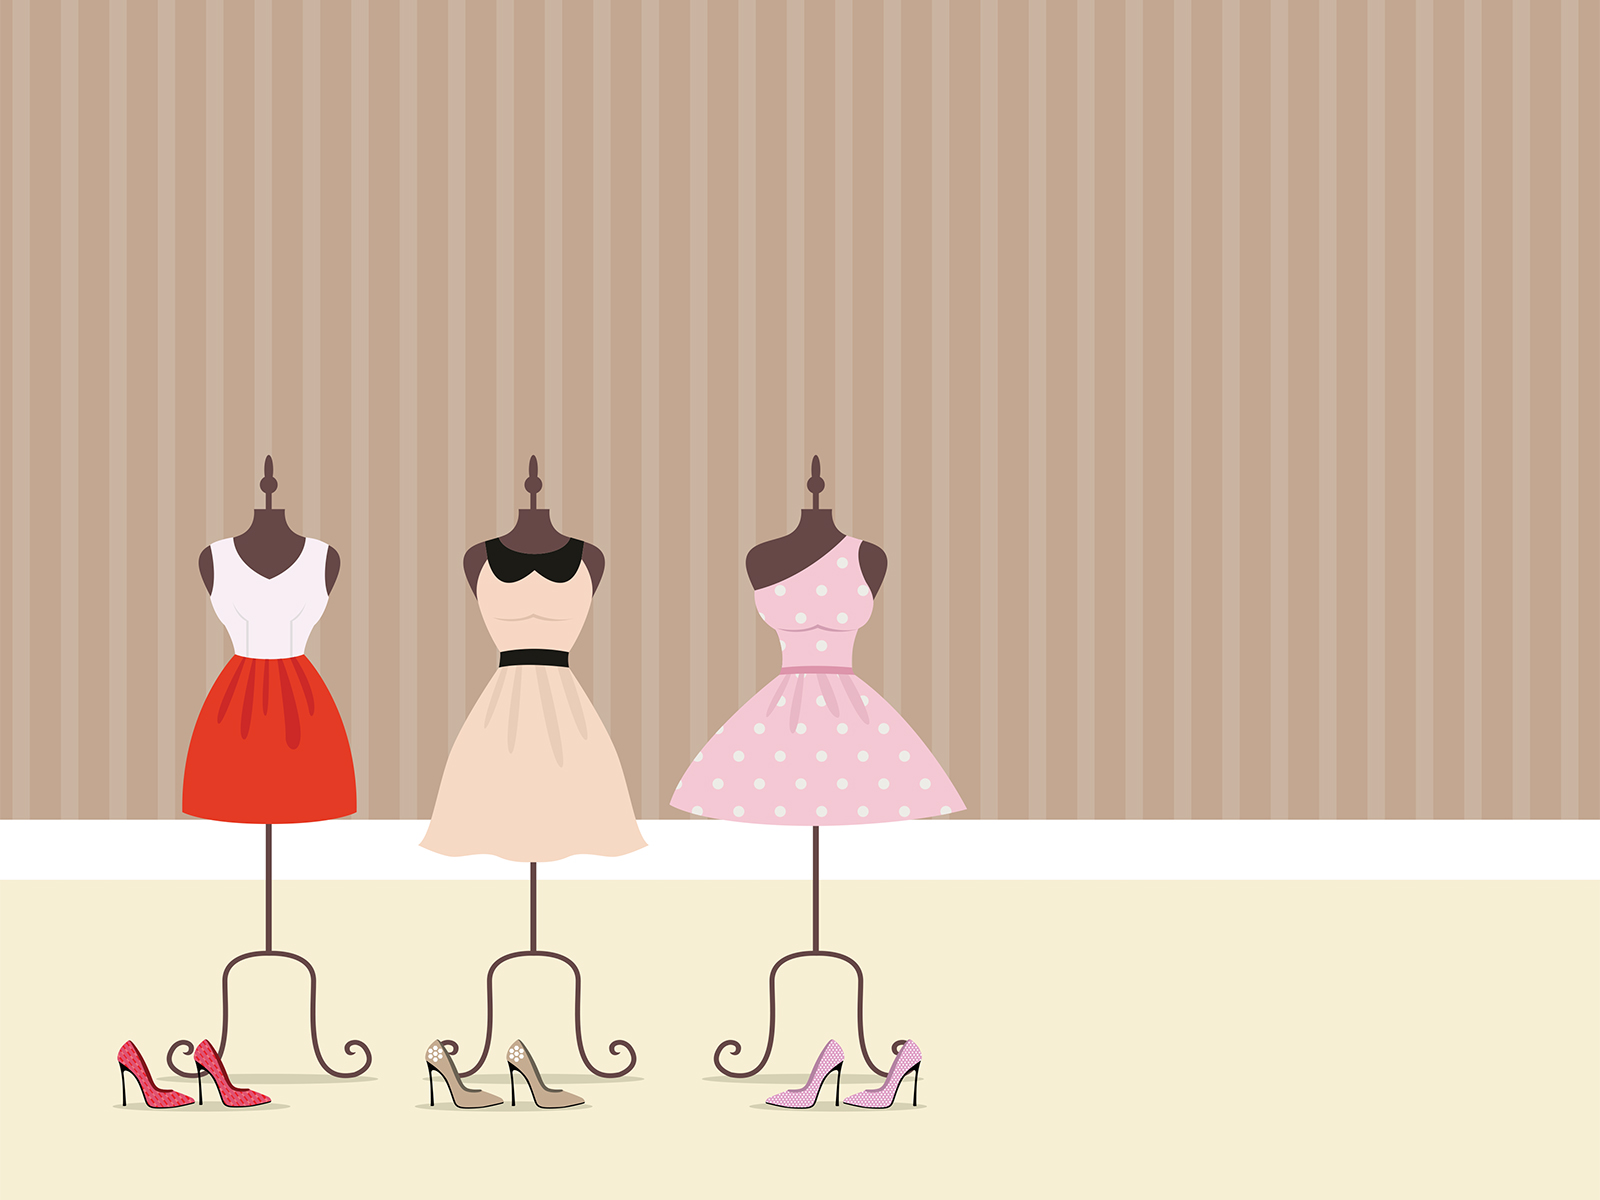 Dressing Point P Dresses Clothing Backgrounds Beige Design Pink Red